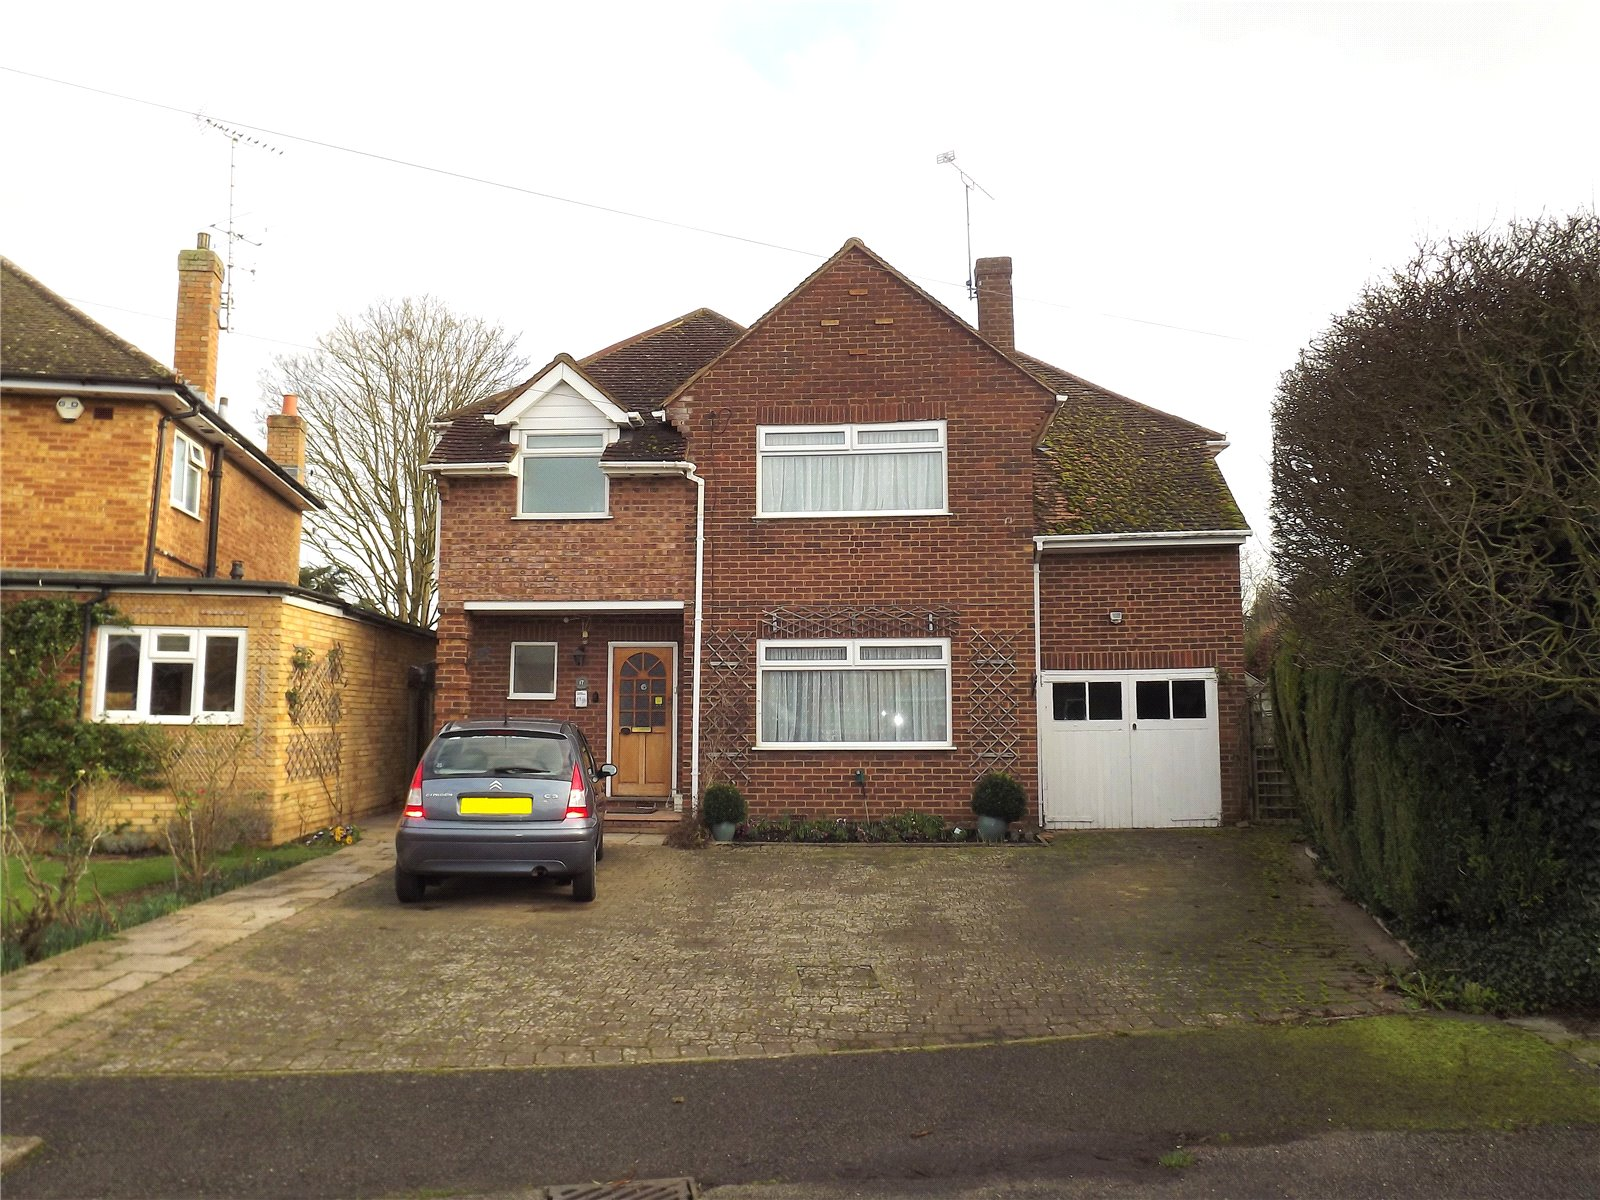 4 Bedrooms Detached House for sale in Hyde Green, Marlow, Buckinghamshire, SL7